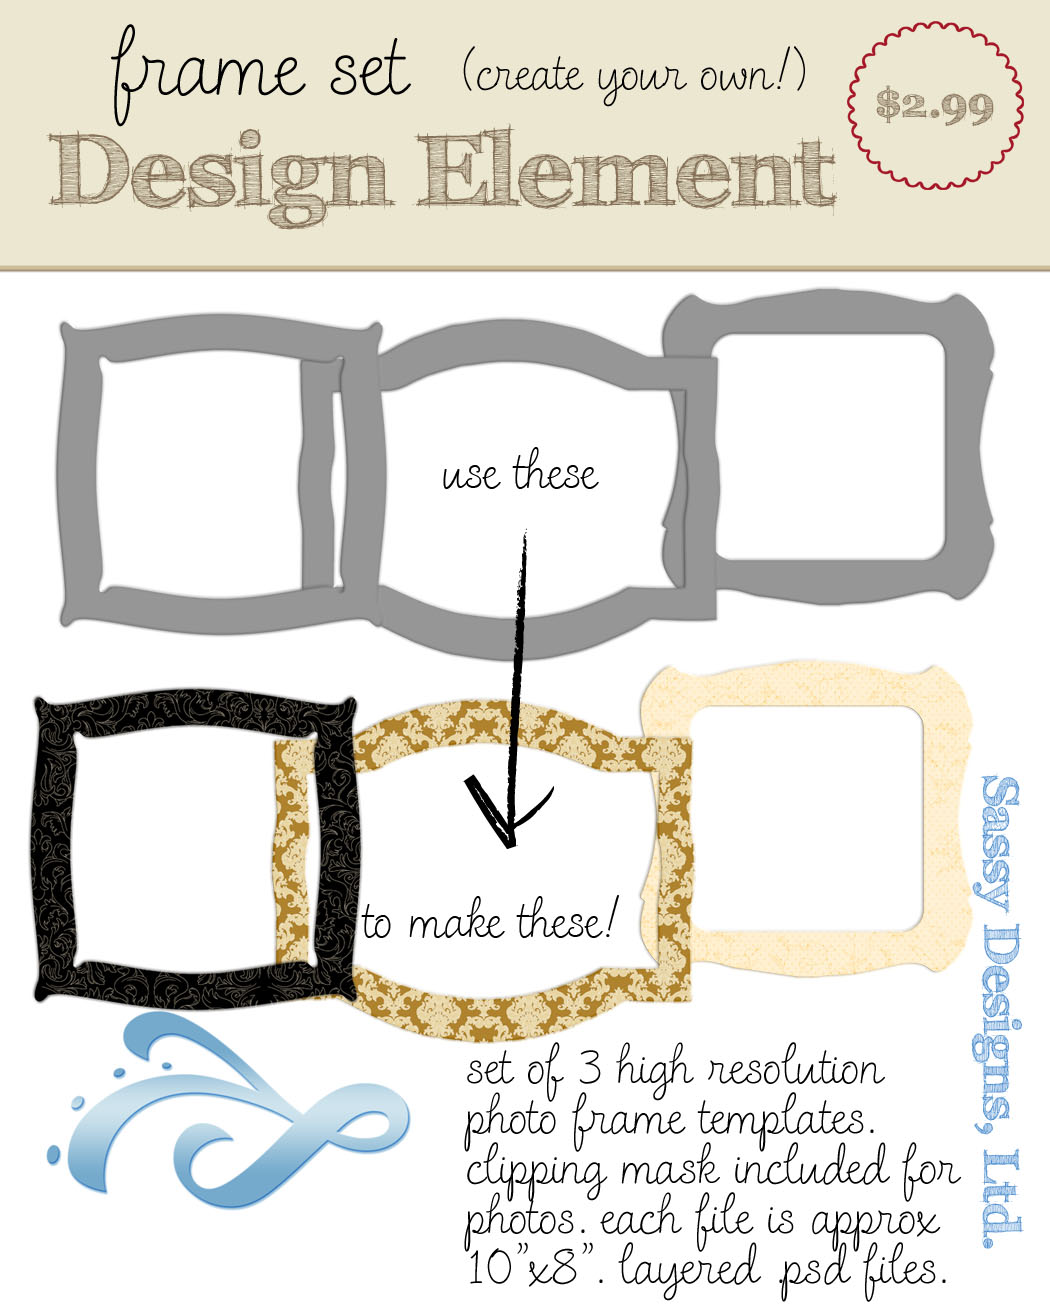 Create a Frame Set